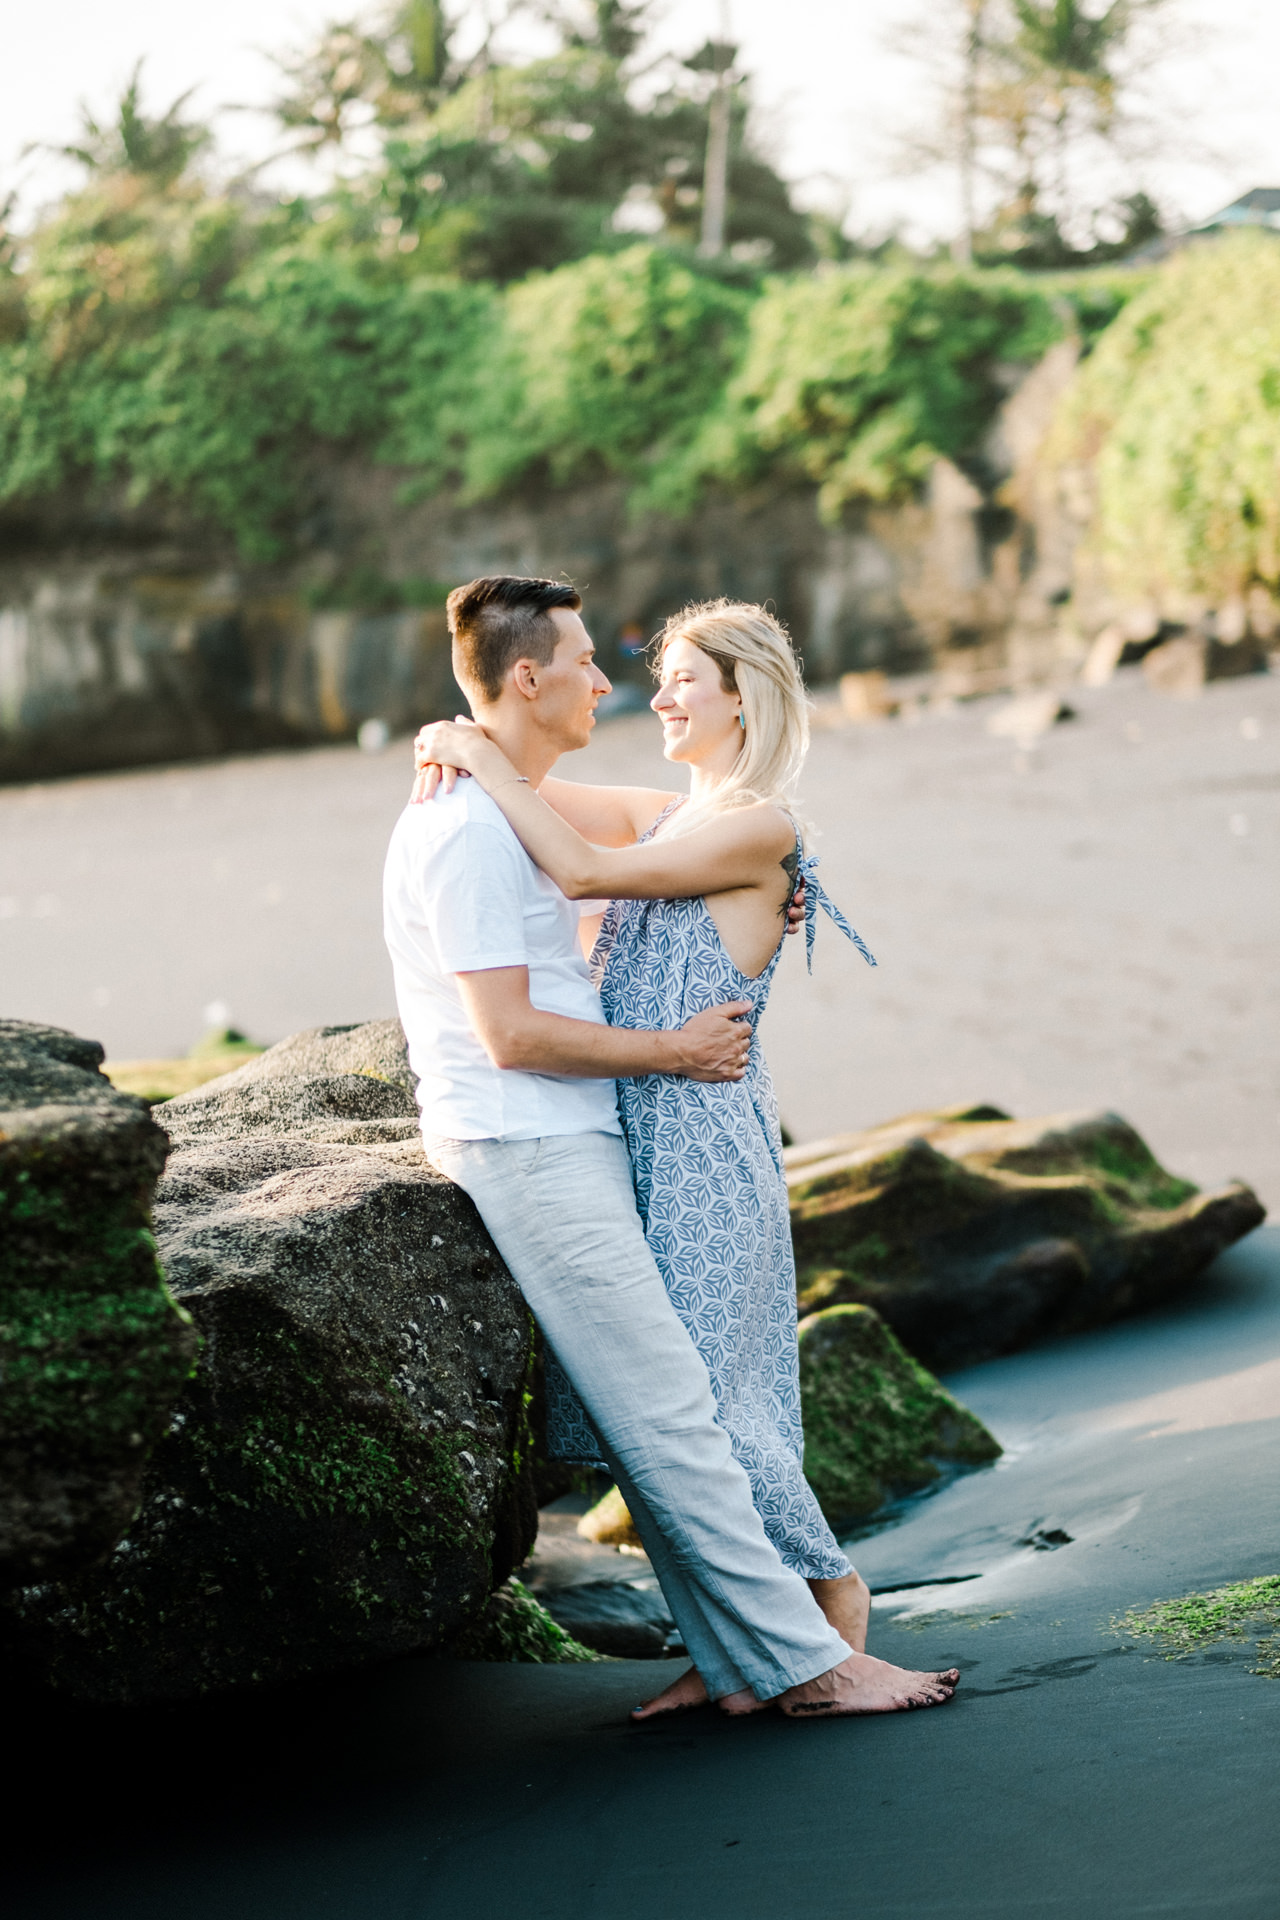 Bali Honeymoon Photographer | Joanna and Jakub's in Bali 13